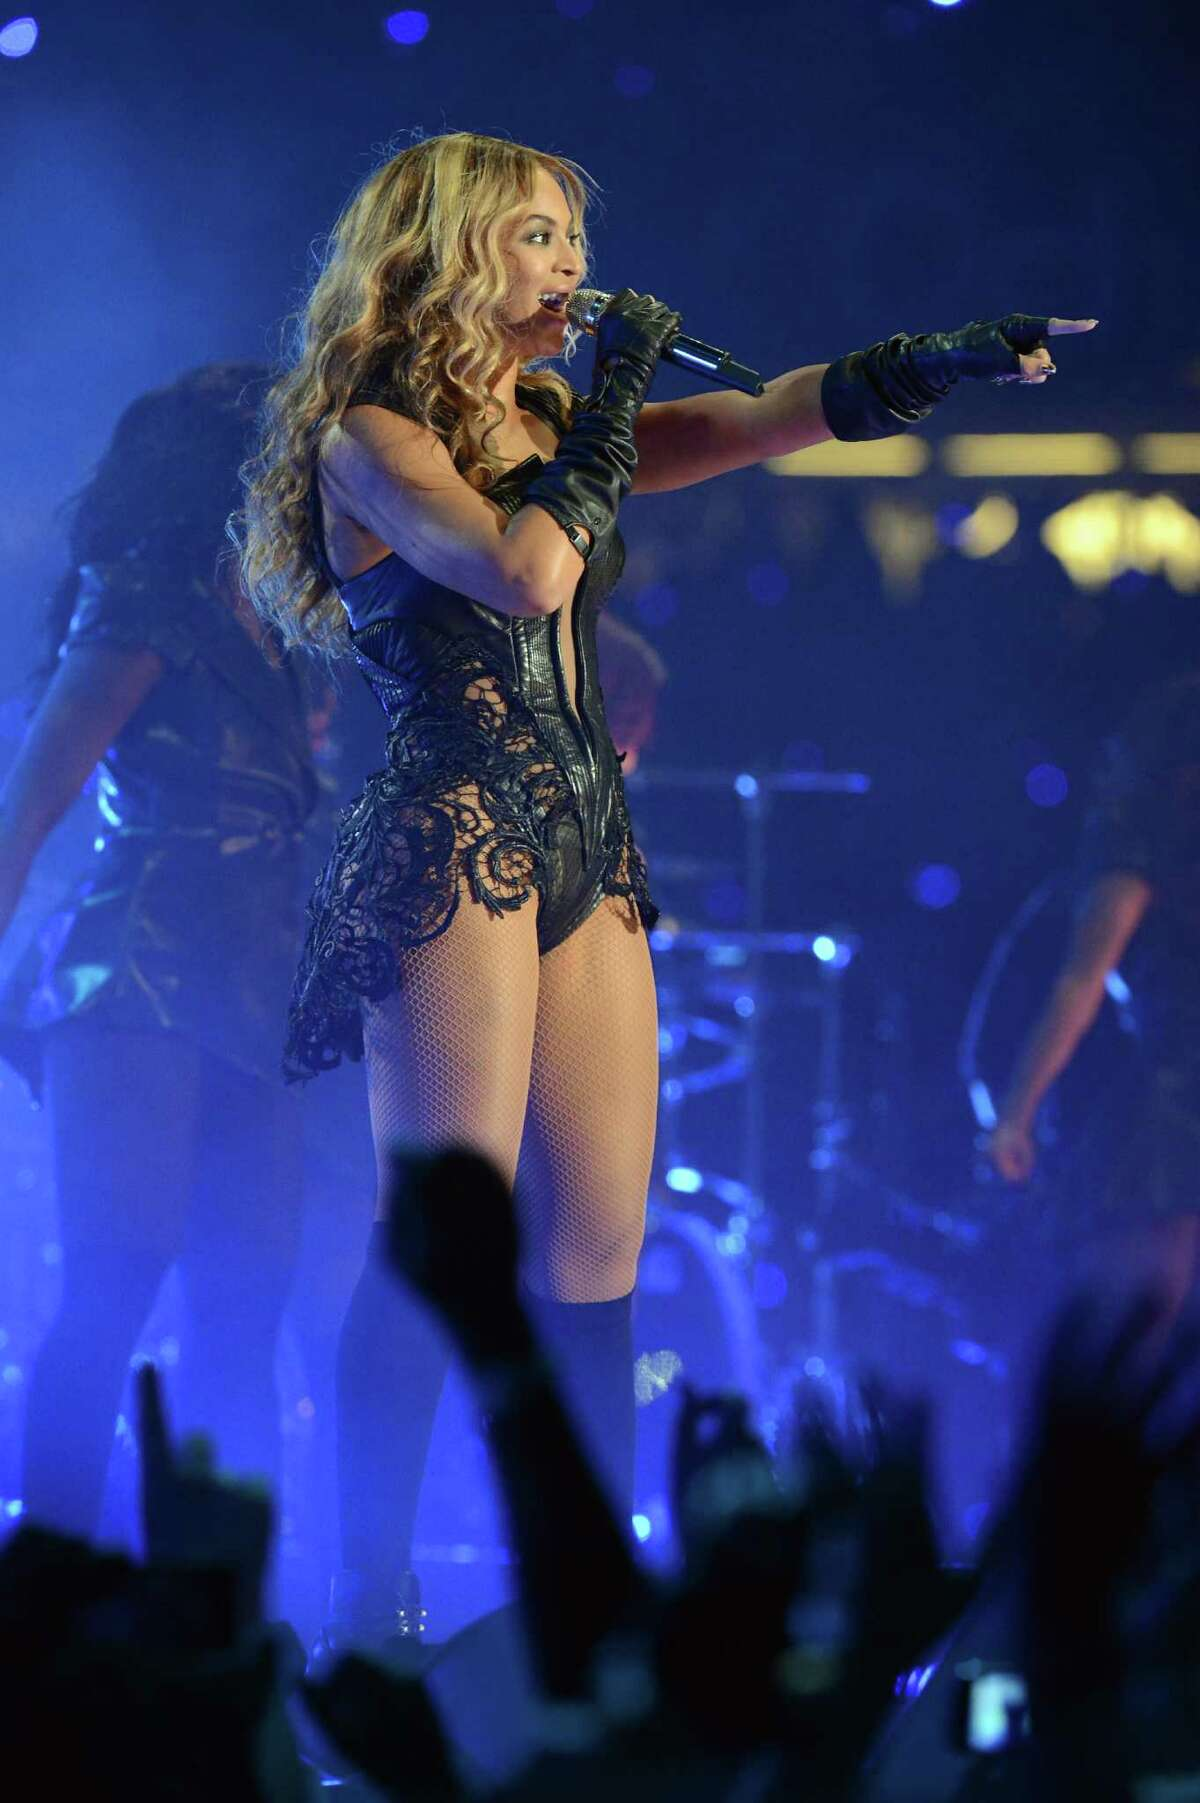 Singer Beyonce performs during the Pepsi Super Bowl XLVII Halftime Show at Mercedes-Benz Superdome on February 3, 2013 in New Orleans, Louisiana. (Photo by Jeff Kravitz/FilmMagic)